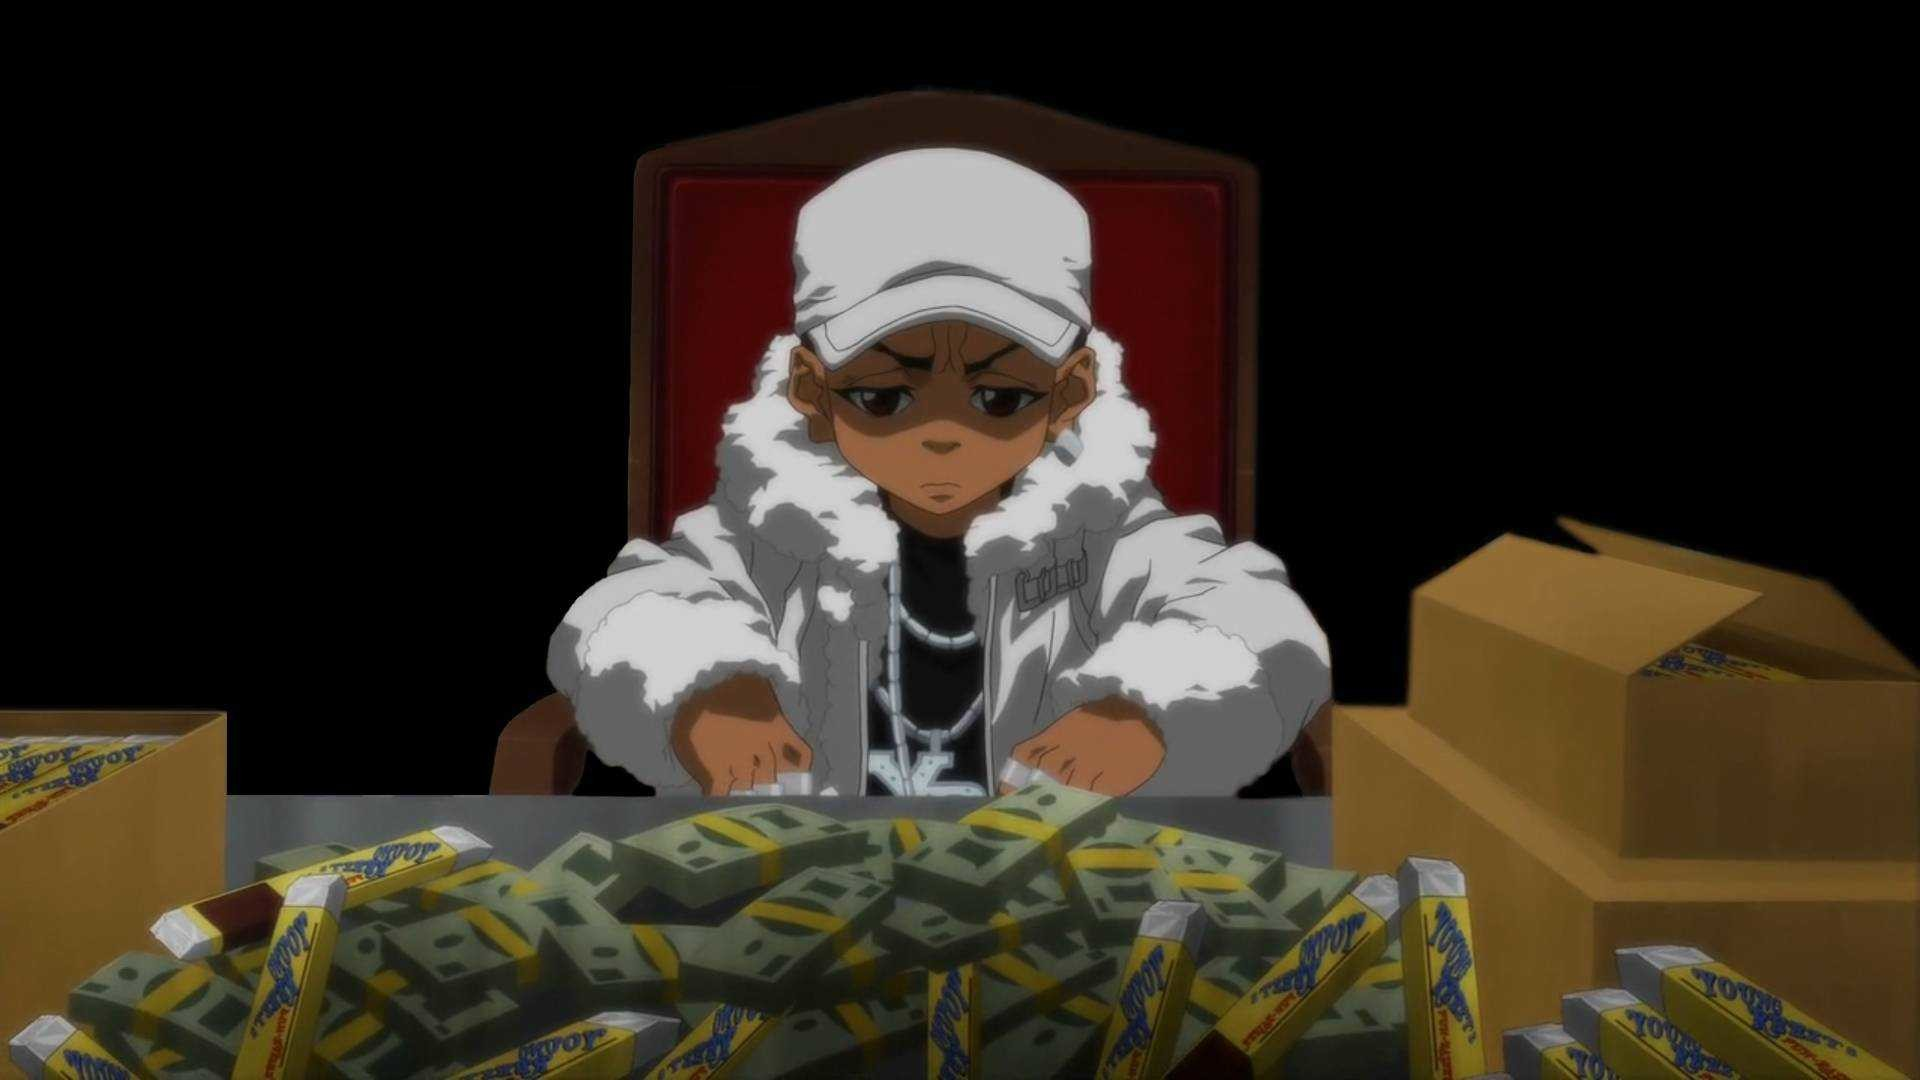 Res: 1920x1080, High Quality Of Boondocks Wallpaper The Mobile